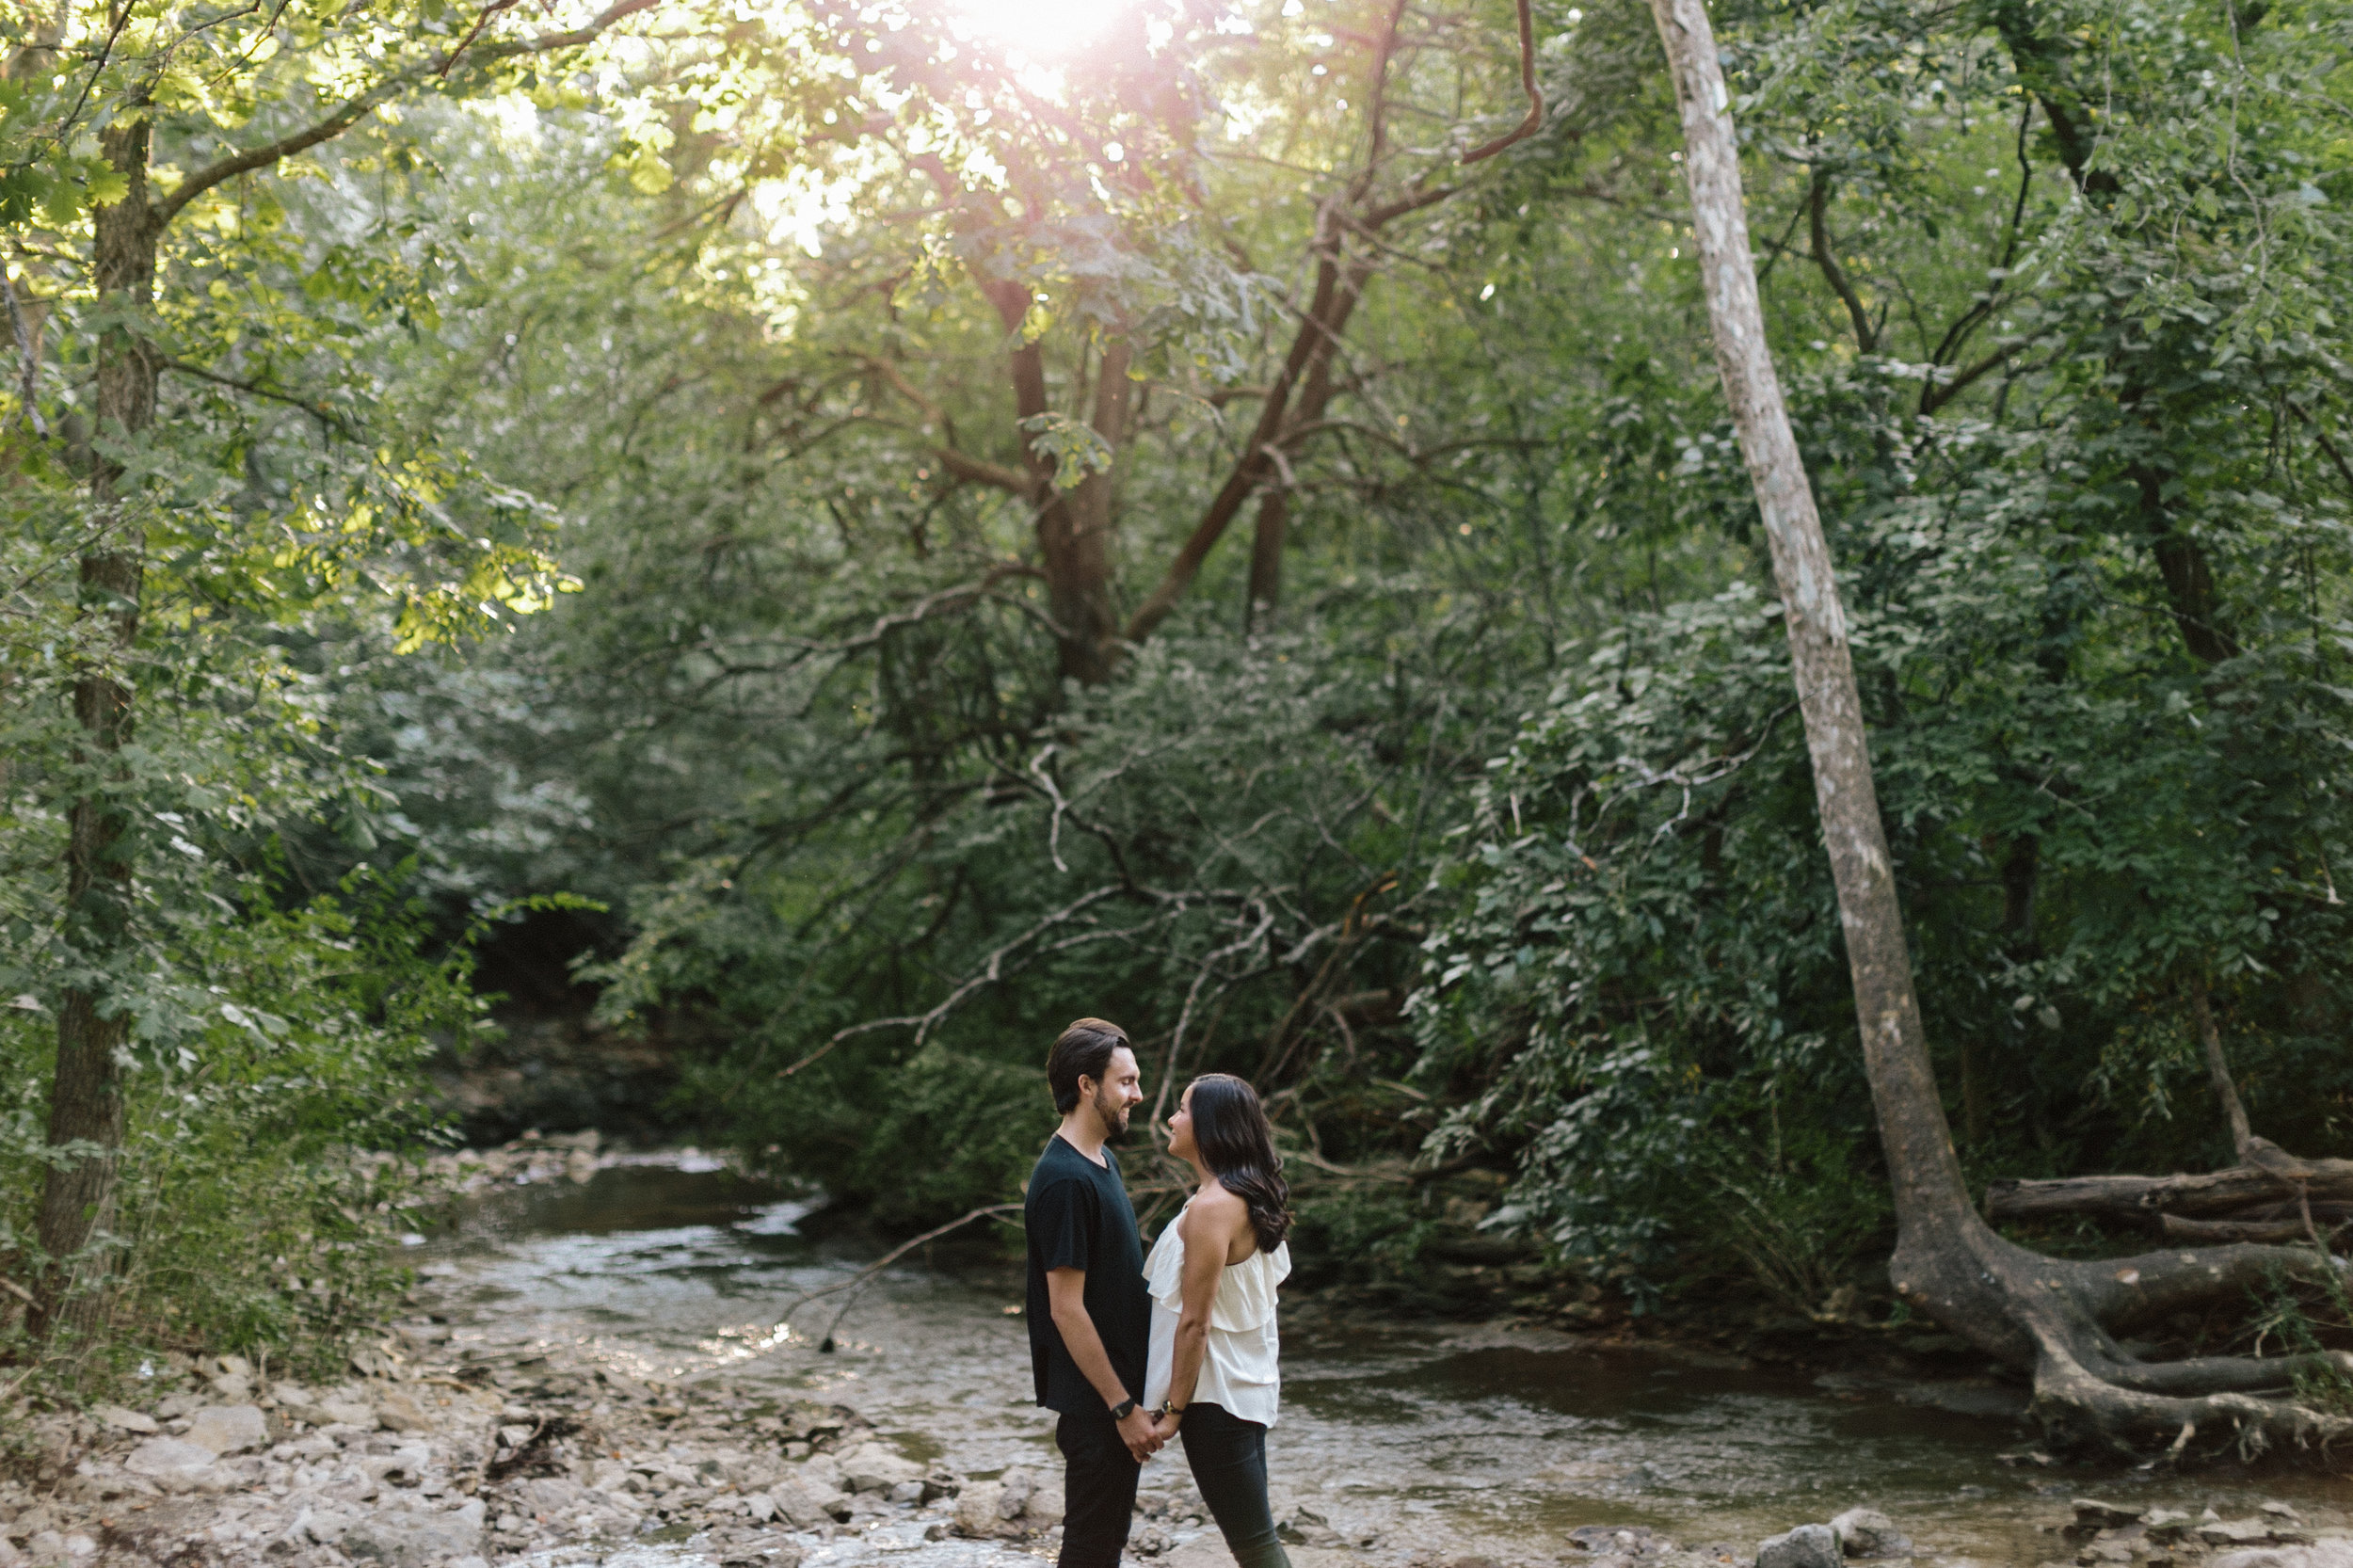 alyssa barletter photography shawnee mission park engagement marisa and kurtis-8.jpg